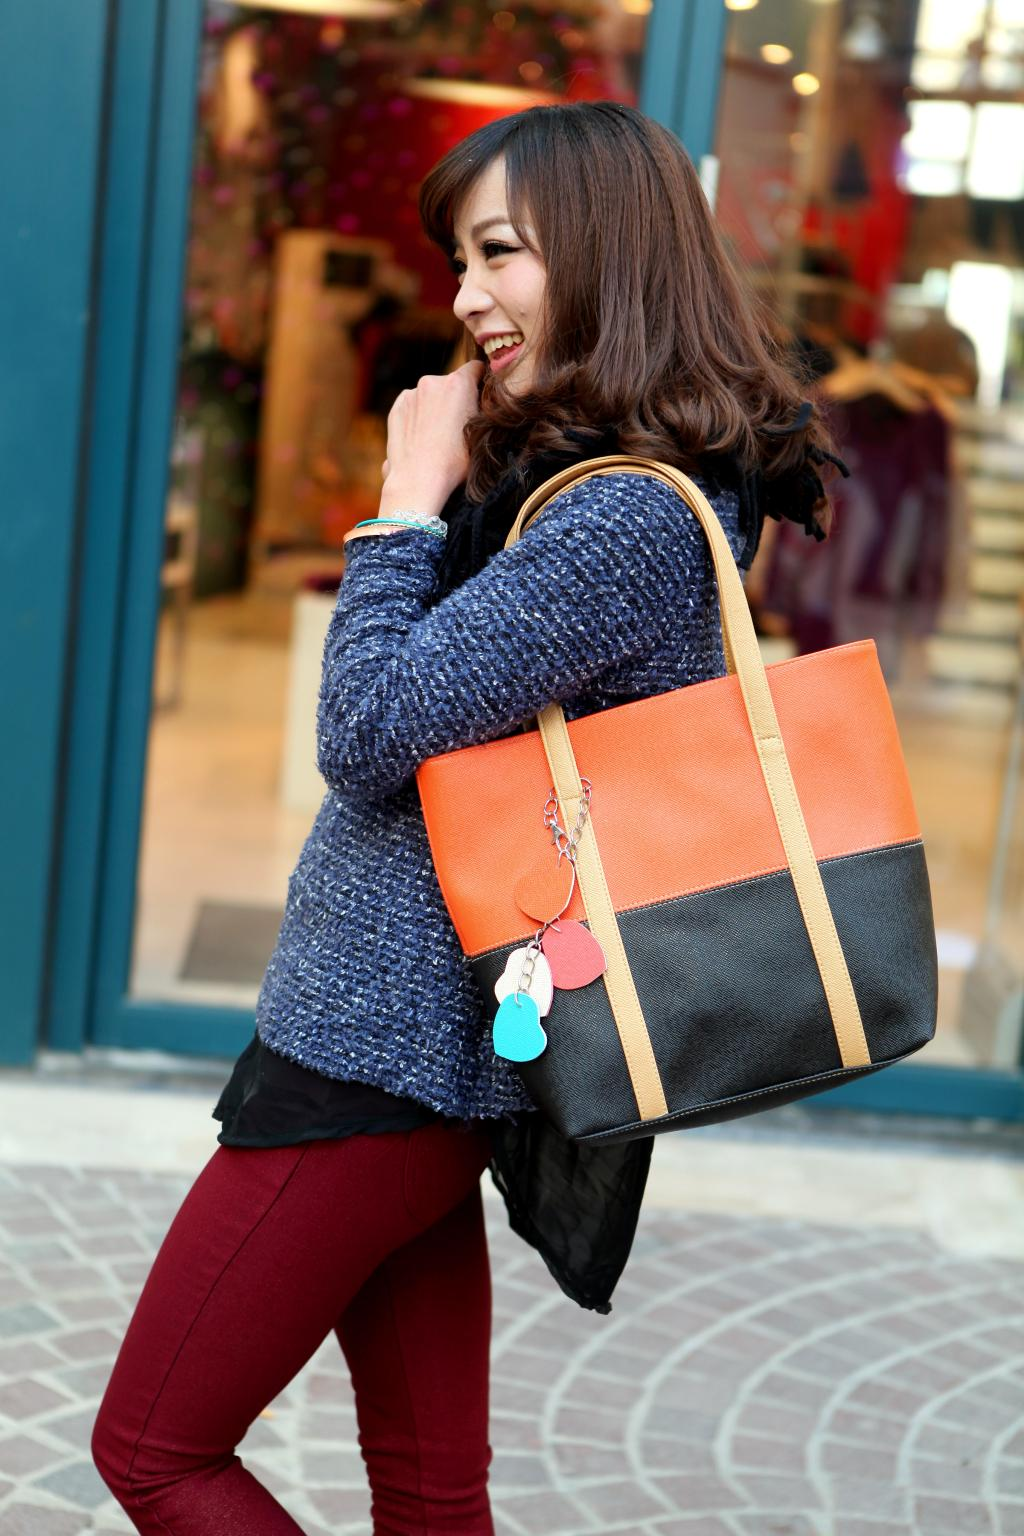 Large Capacity Women Shoulder Bag Two spell candy color female bag Fashion Lady Women Leather Bag 10